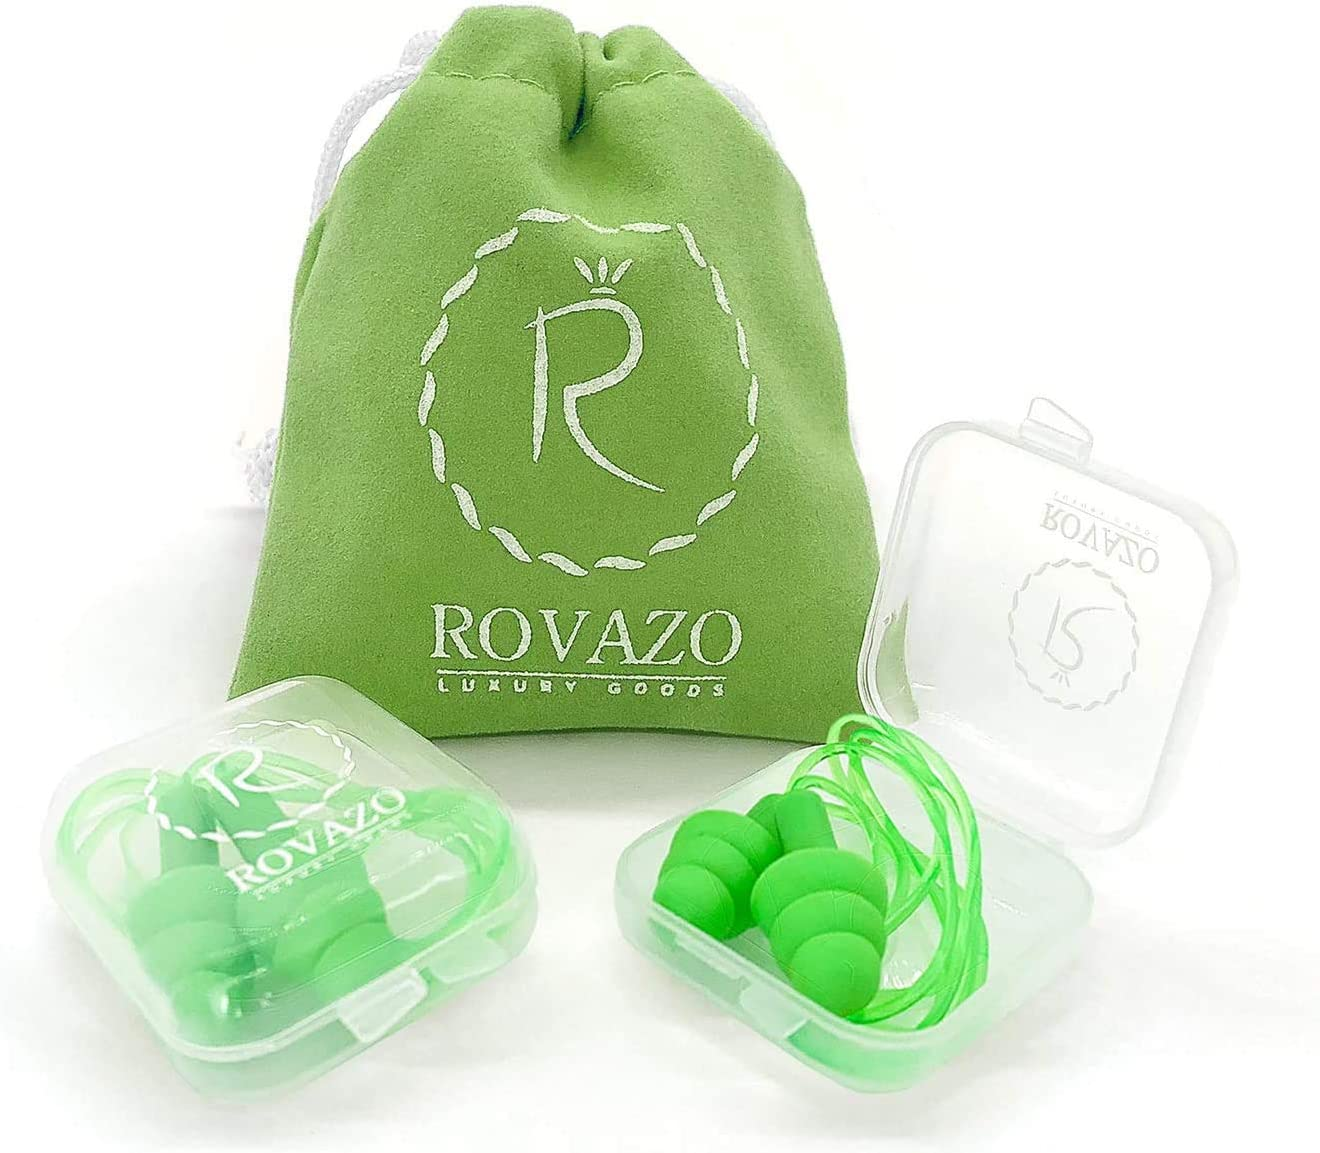 ROVAZO - Reusable Silicone Corded Ear Plugs – 2 Pairs - NRR 32, Waterproof, Hypoallergenic - Ultra Comfortable Noise Reduction Earplugs for Swimming, Concerts and Airplanes – Bonus Travel Pouch